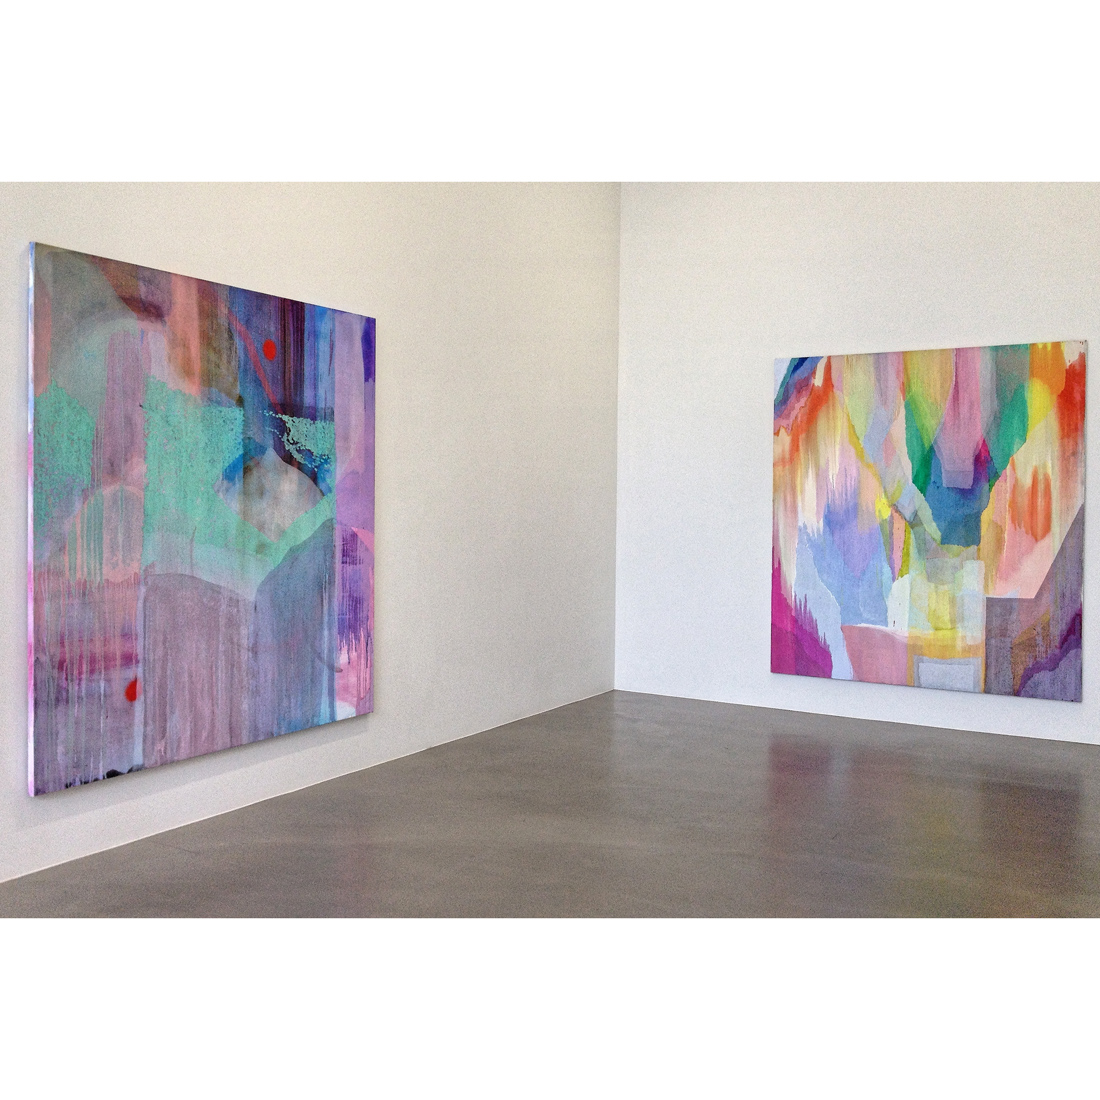 Victoria Morton: Spoken Yeahs From a Distance at   Sadie Coles HQ   1 Davies Street London W1K 3DB